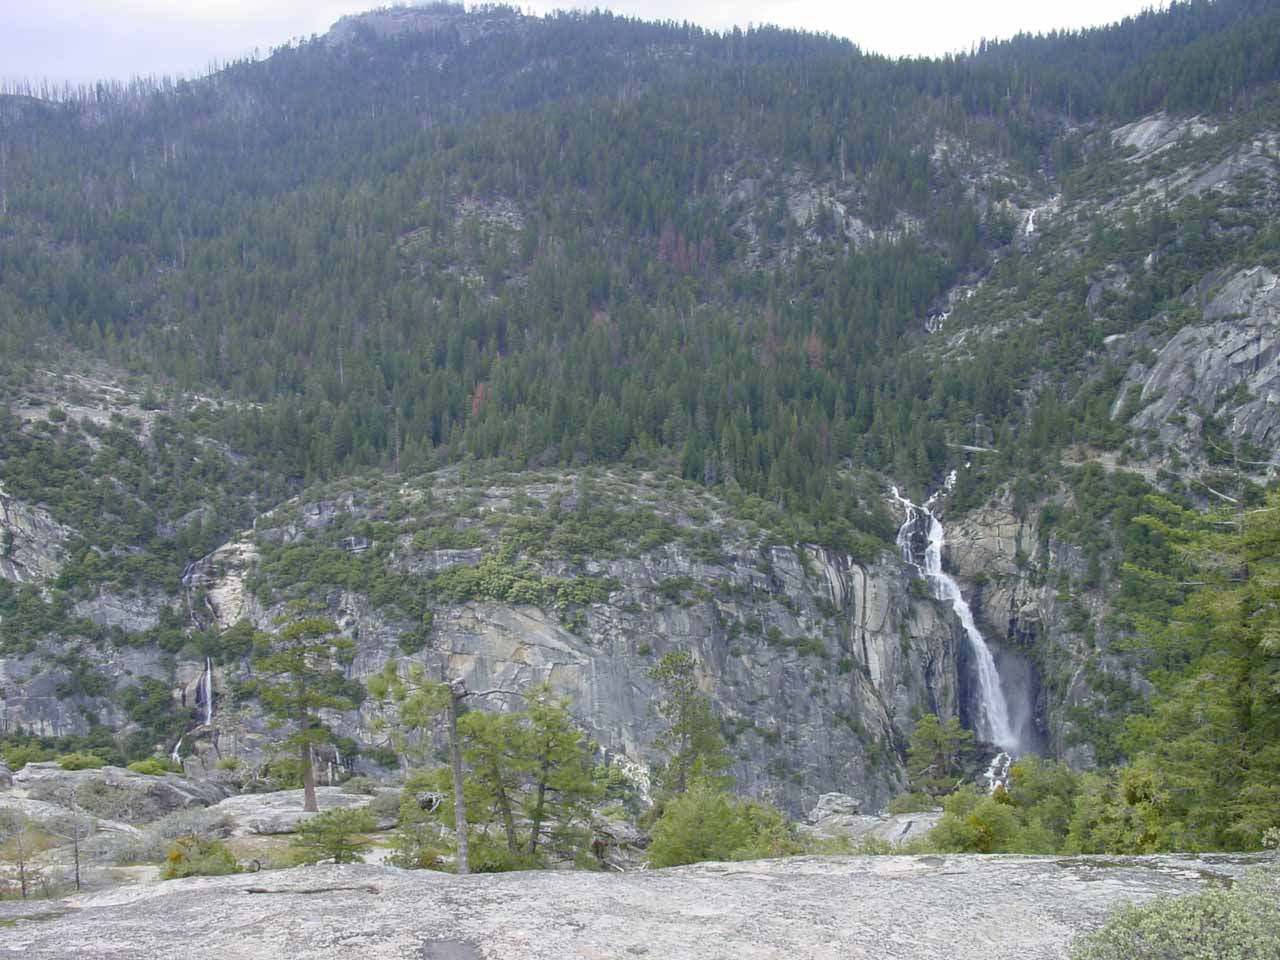 Wildcat Falls (left) and Cascade Falls (right) from Turtleback Dome